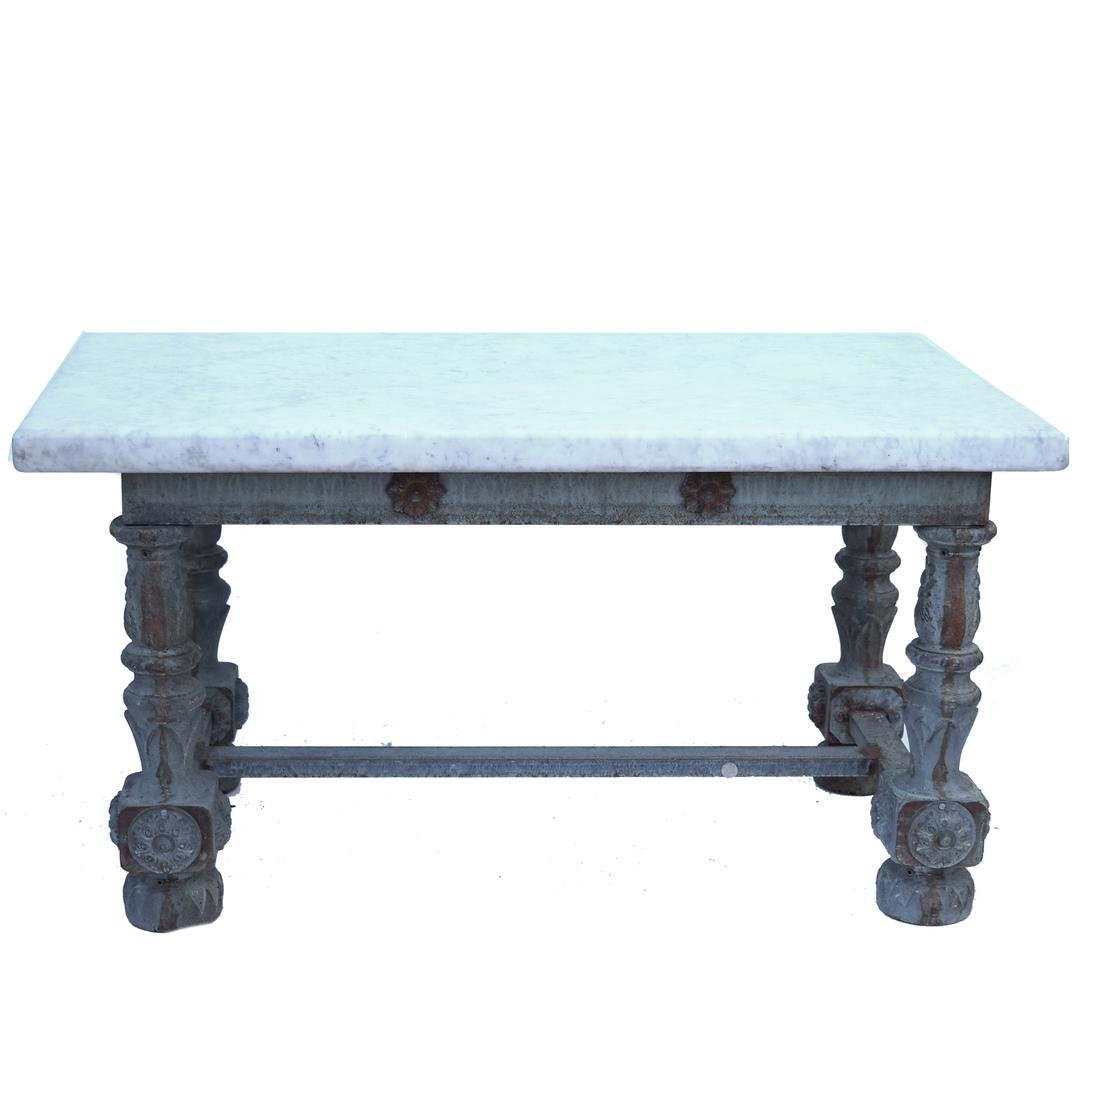 Antique Iron & Marble-Top Baker's Table - 2